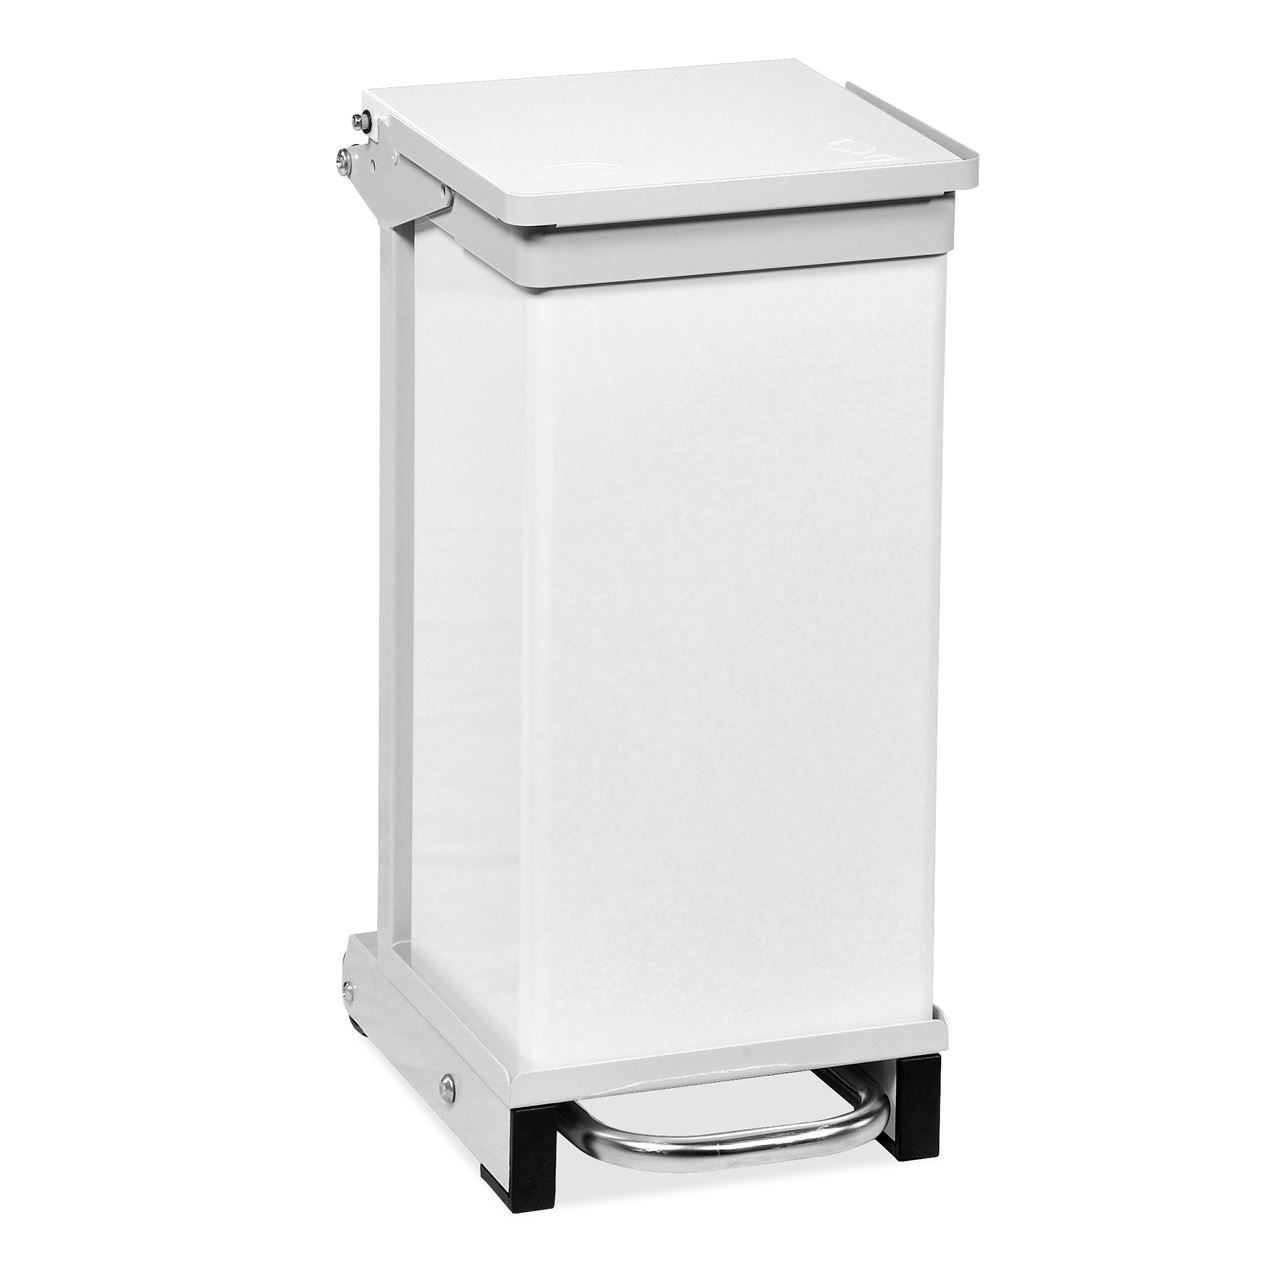 Picture for category Waste Bins Removable Body